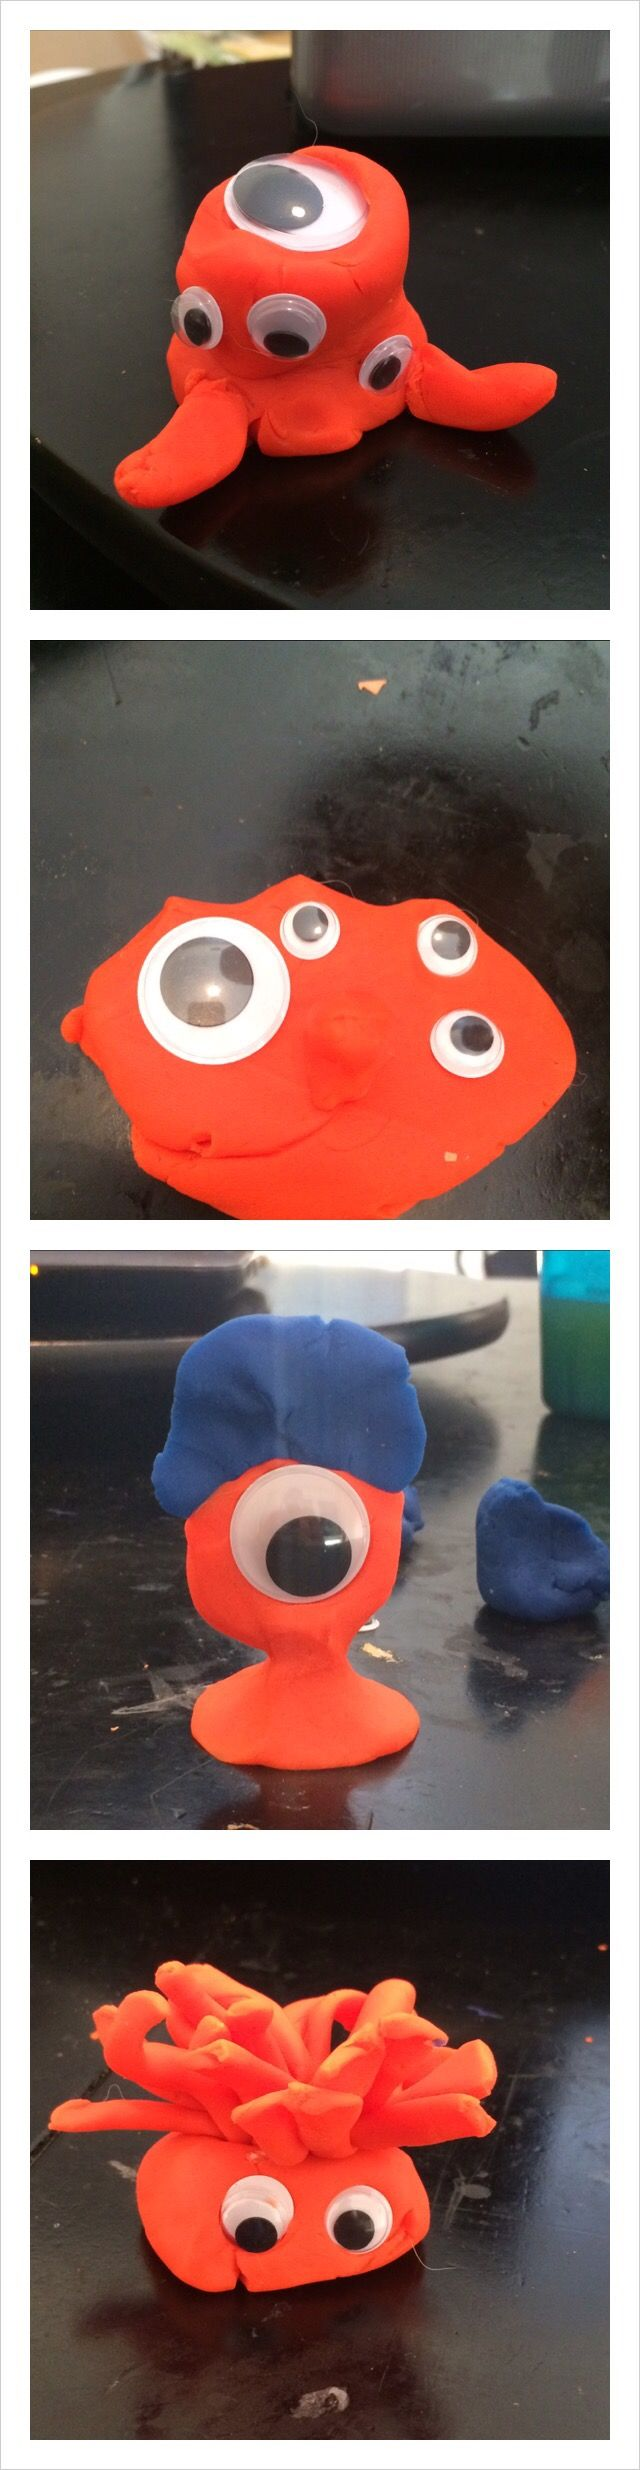 Play-Doh Monsters | Toddler Things